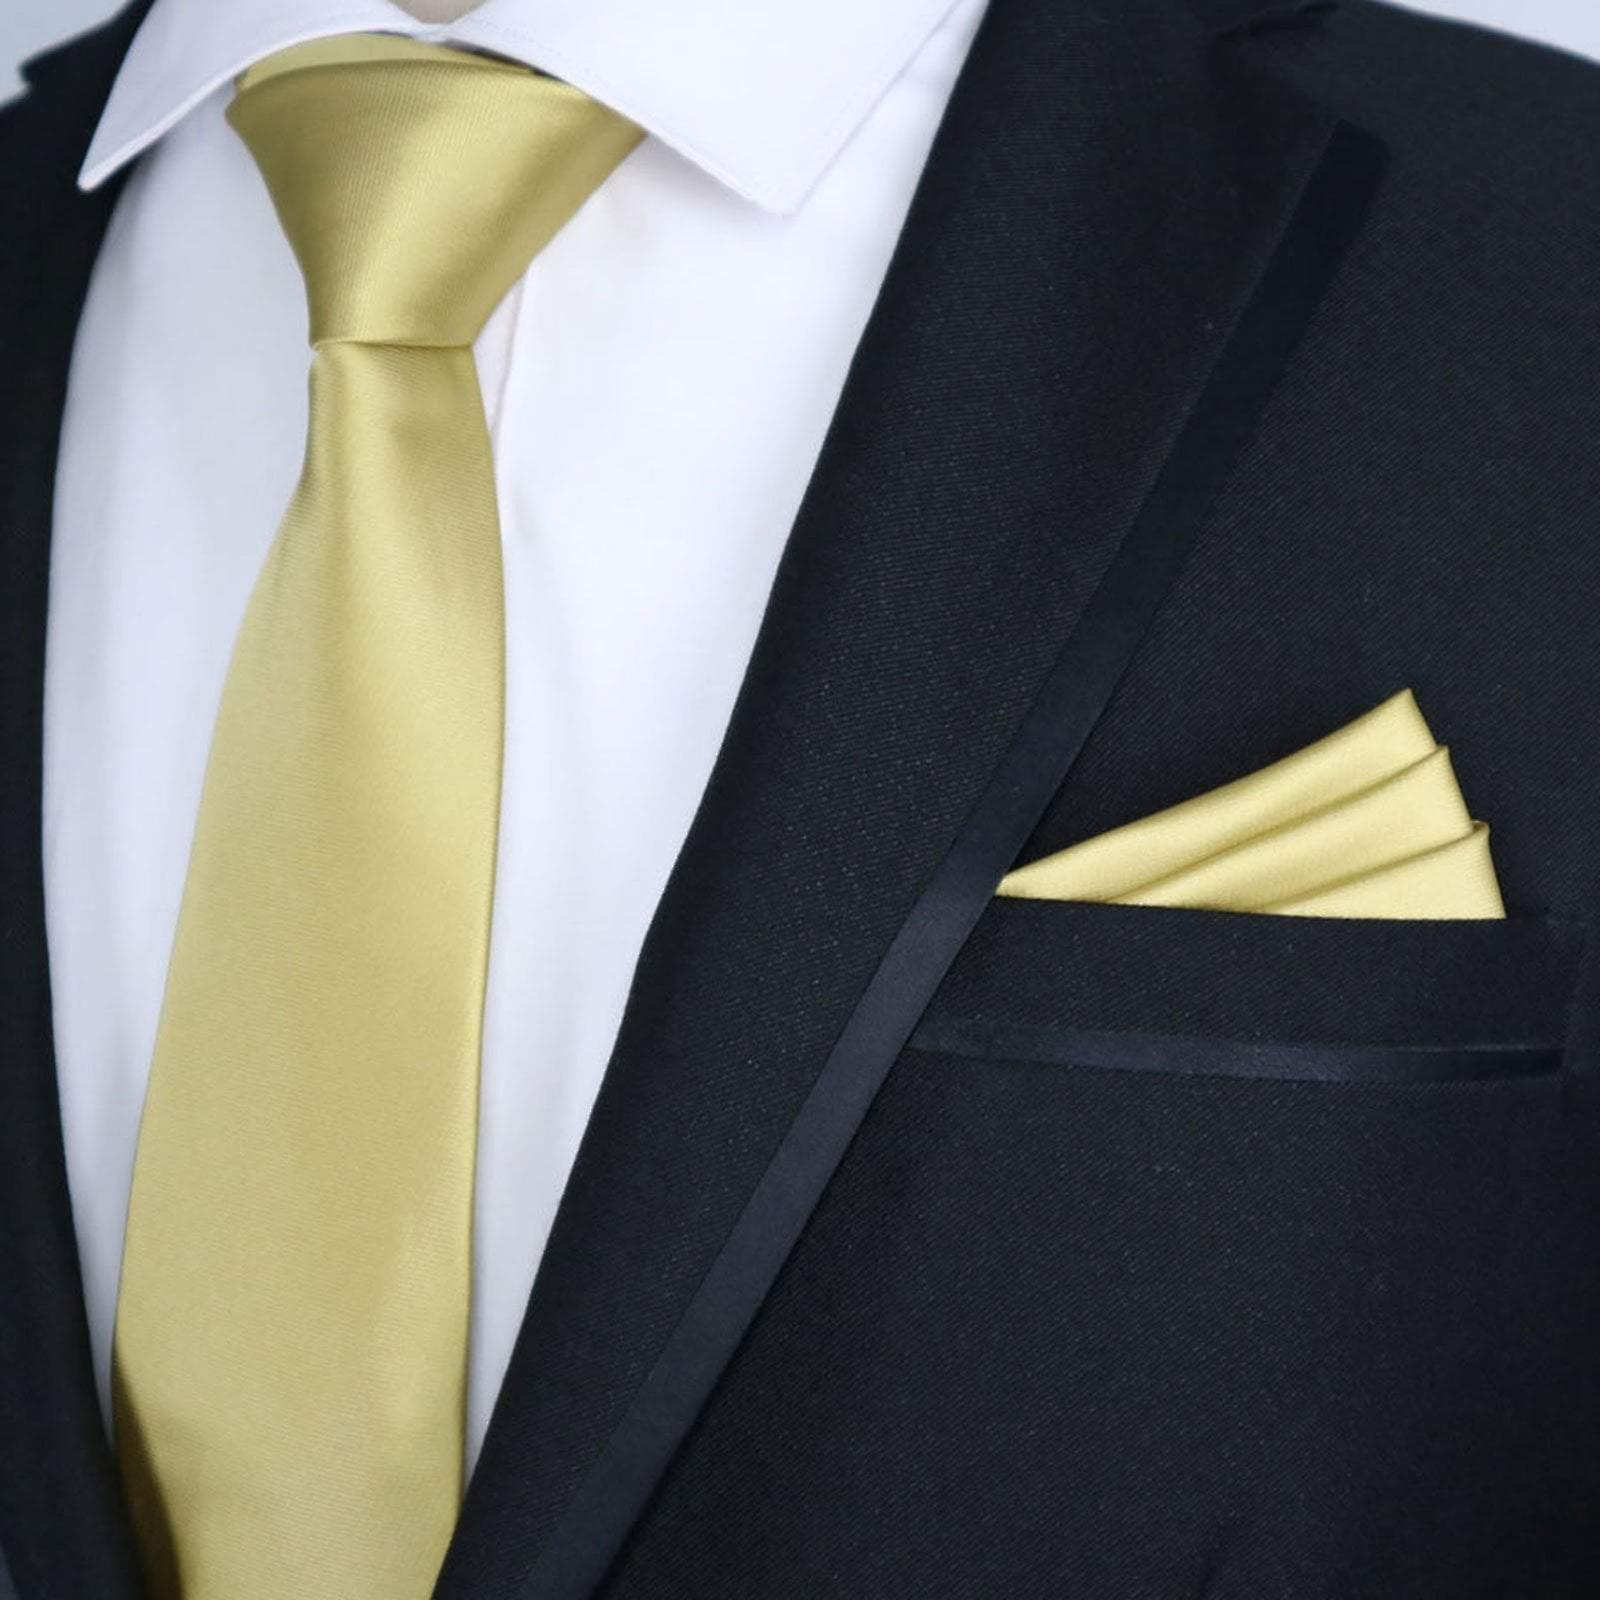 Gold yellow solid satin finish slim tie & pocket square